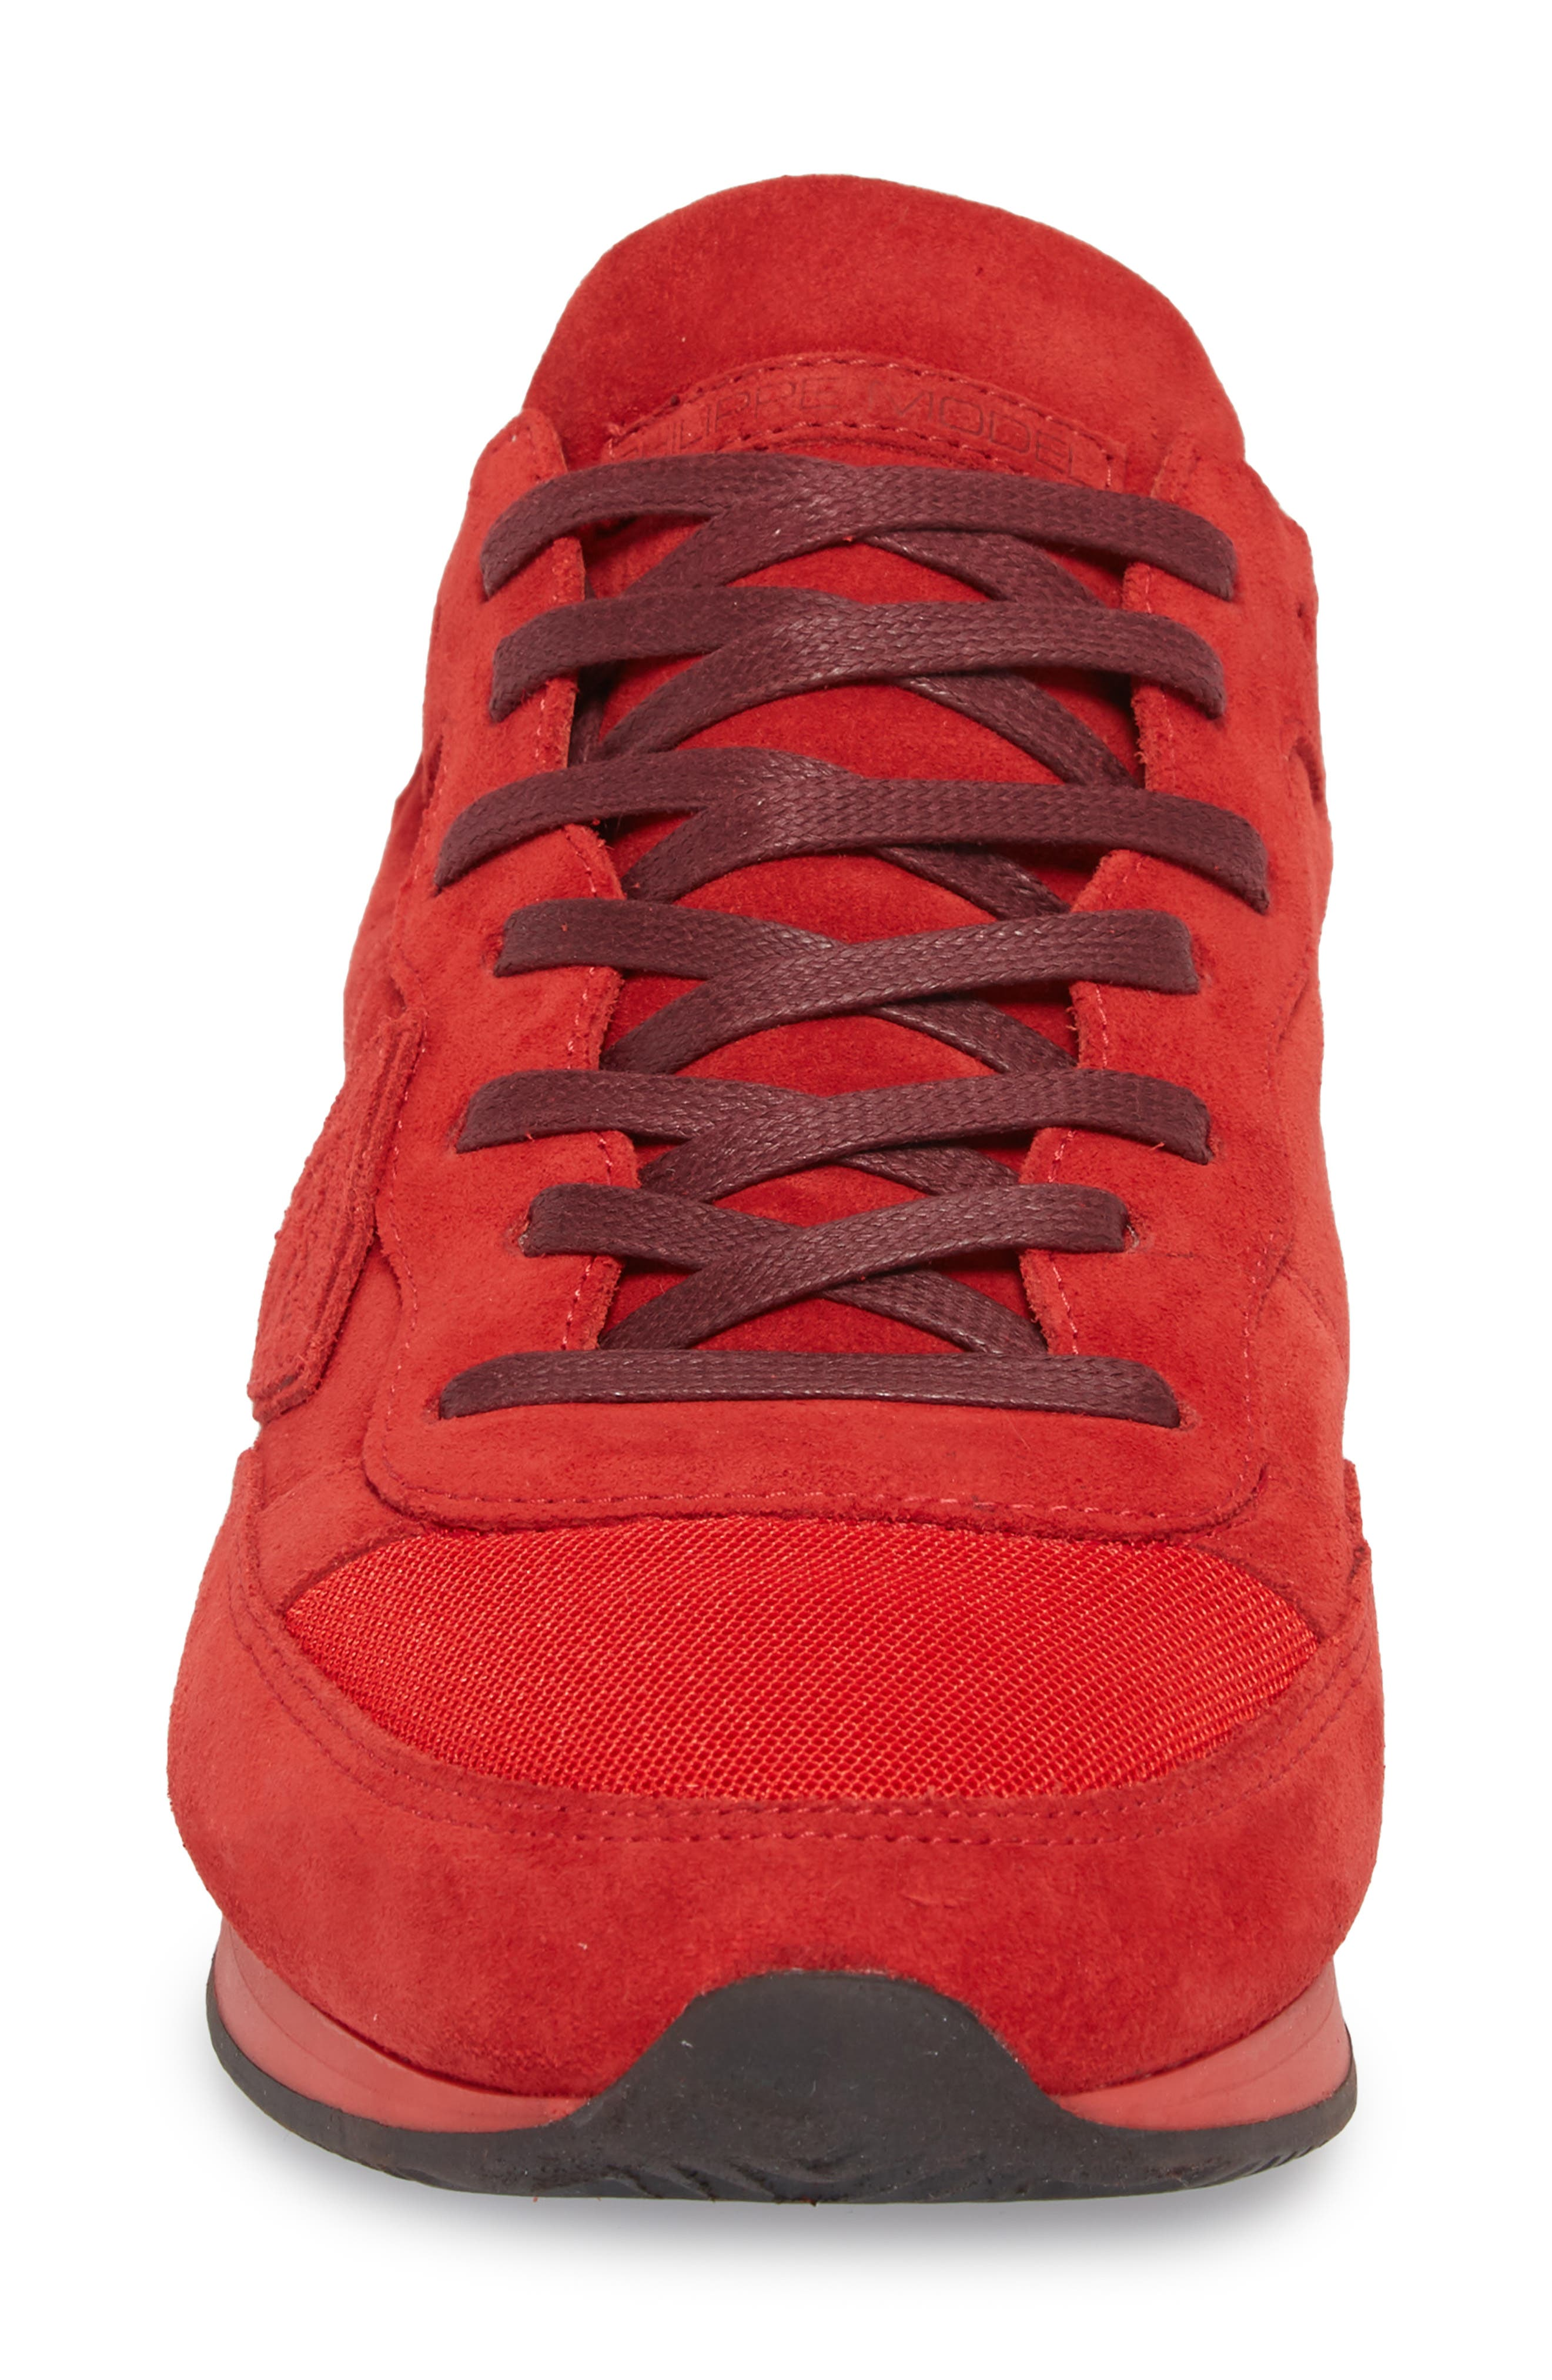 Tropez Low Top Sneaker,                             Alternate thumbnail 4, color,                             Red Suede